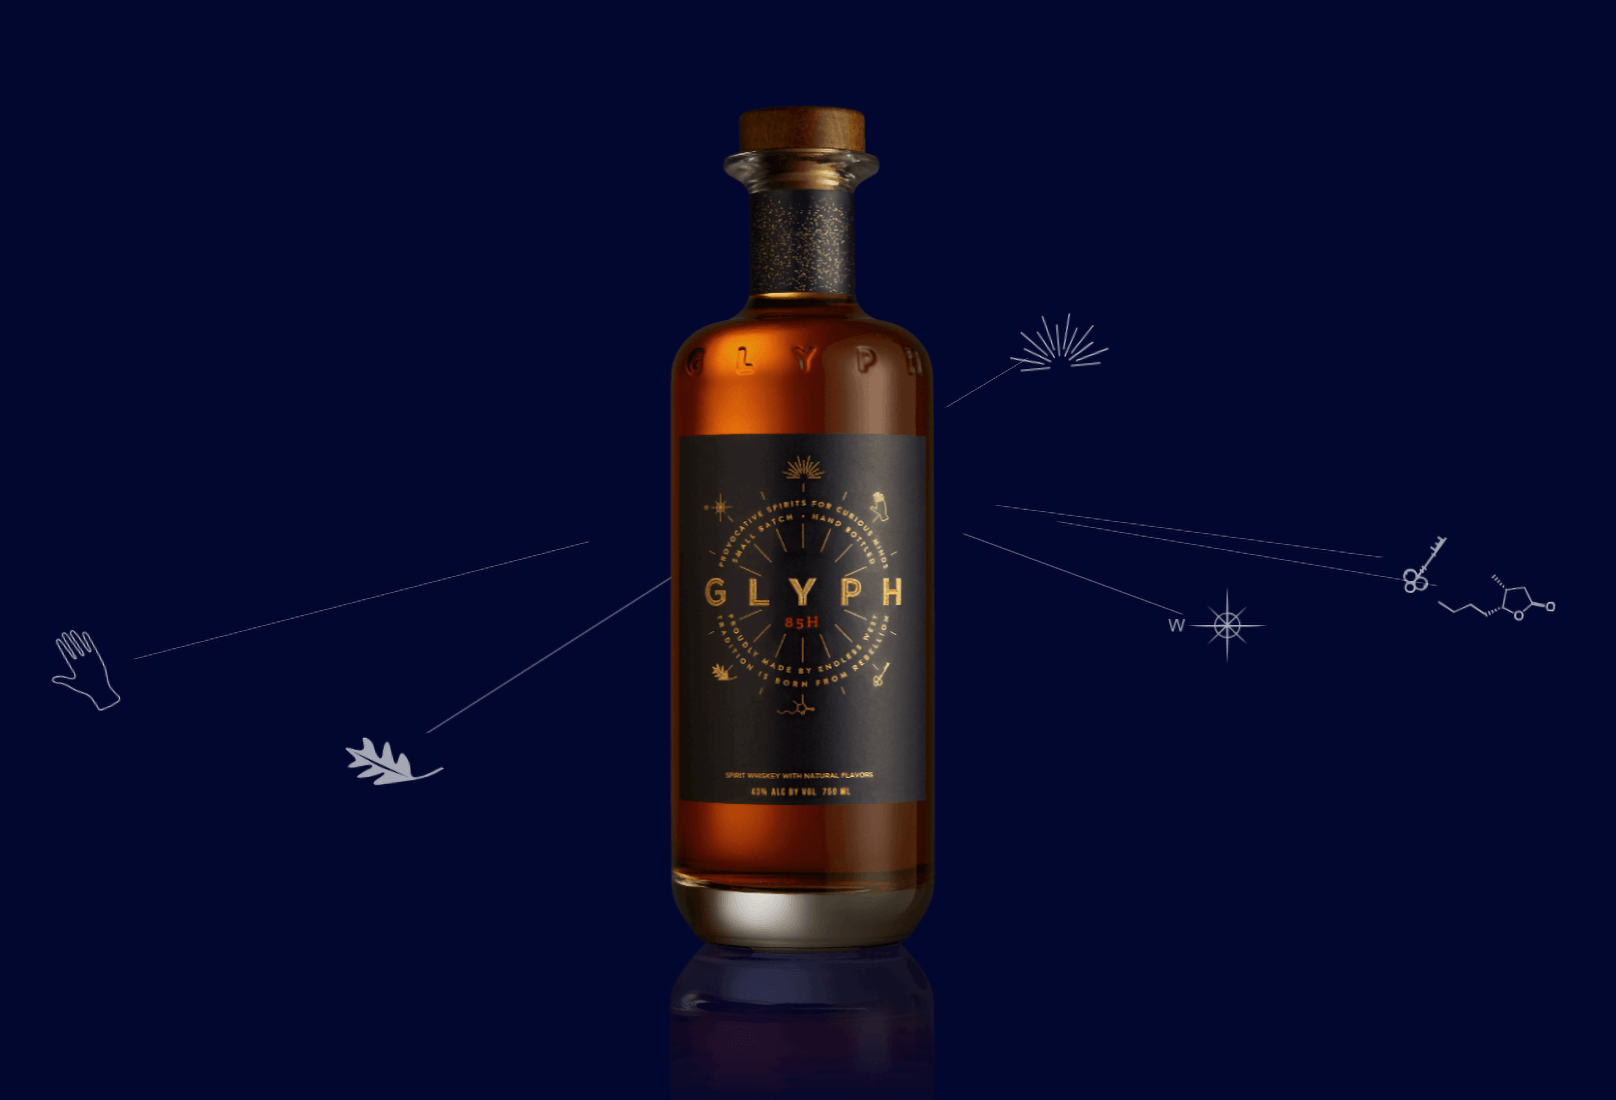 Endless West icons orbiting around a bottle of Glyph whisky